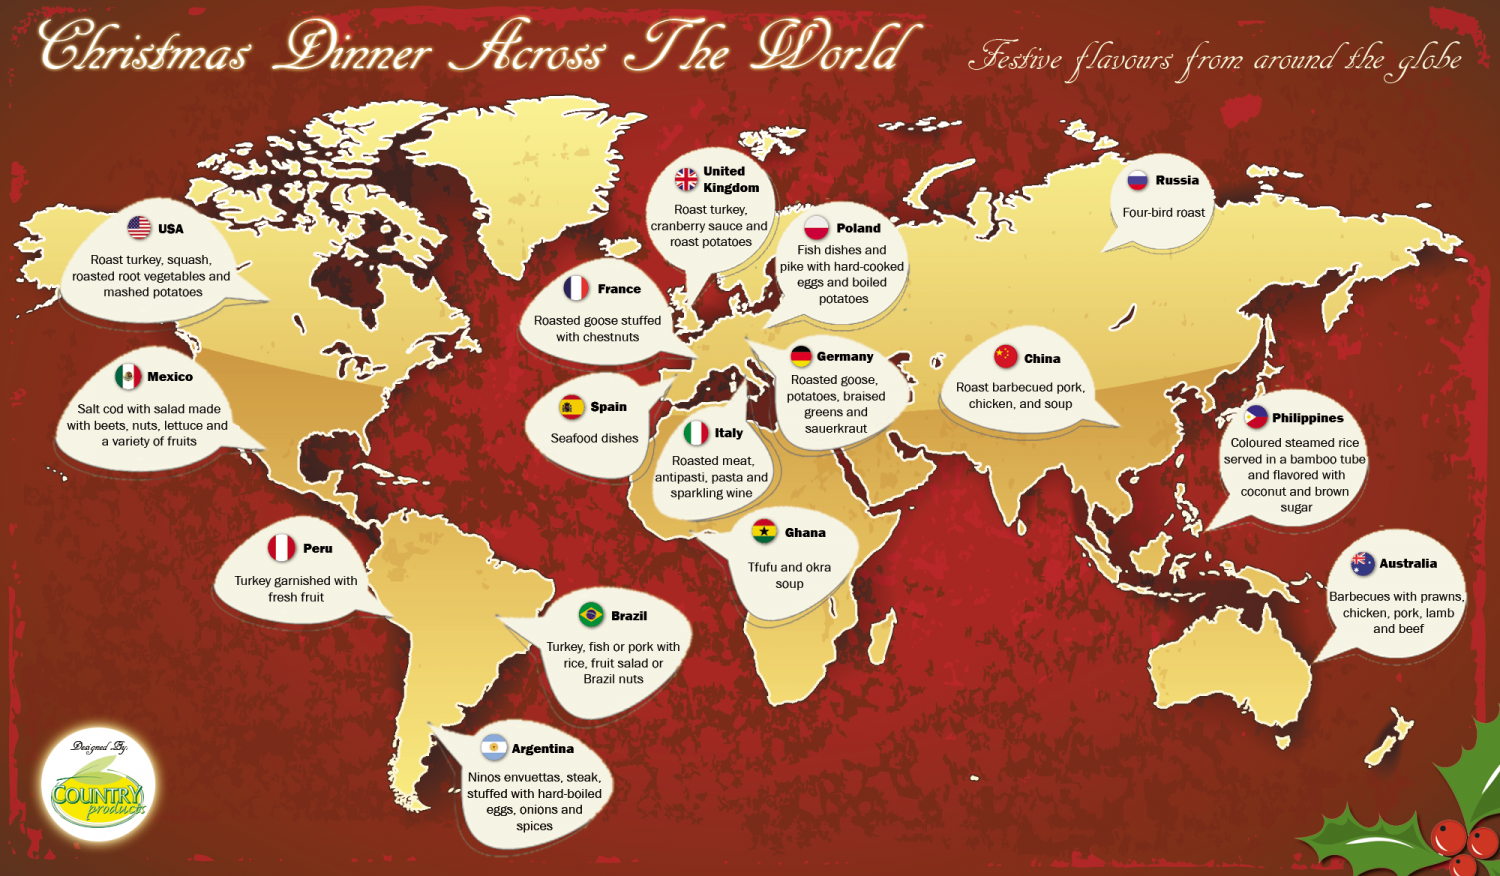 Christmas Dinner Across The World | Visual.ly